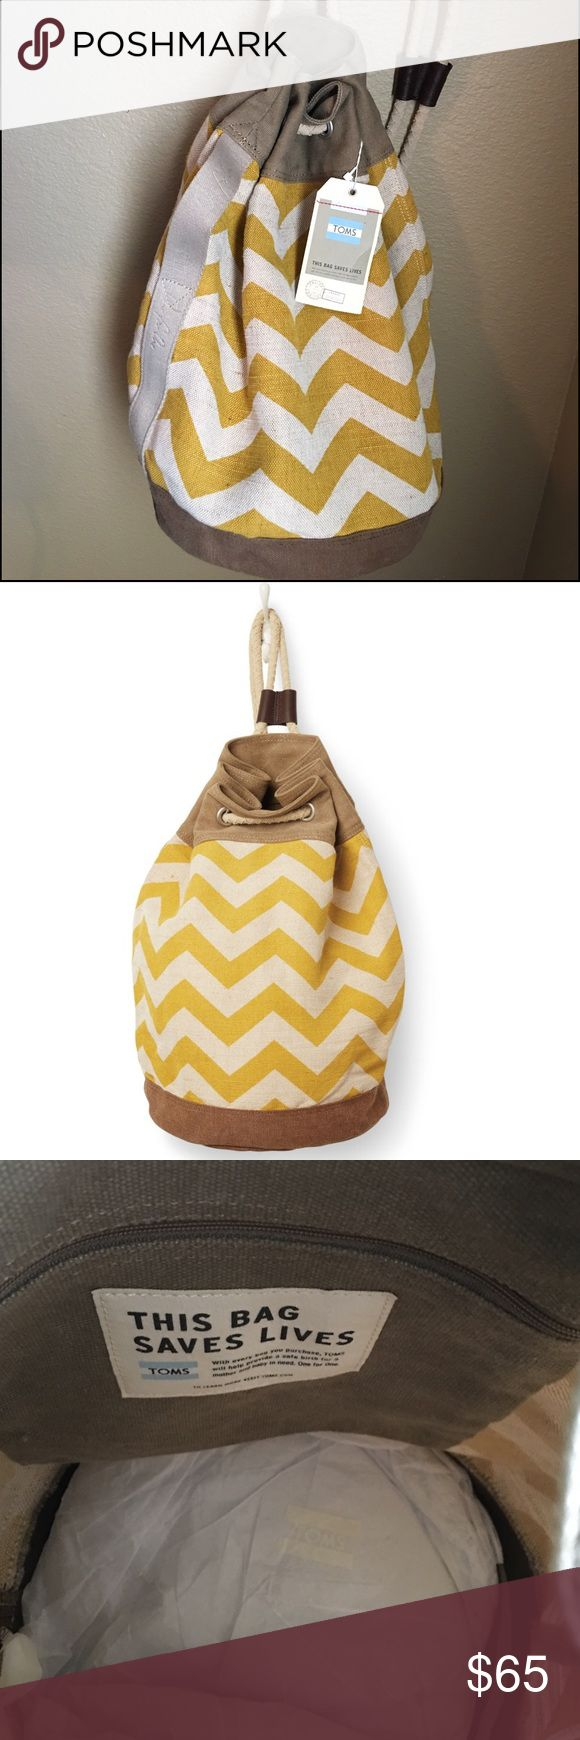 SALE TOMS Bag NWT Toms Chevron Drawstring Bag Toms Bags